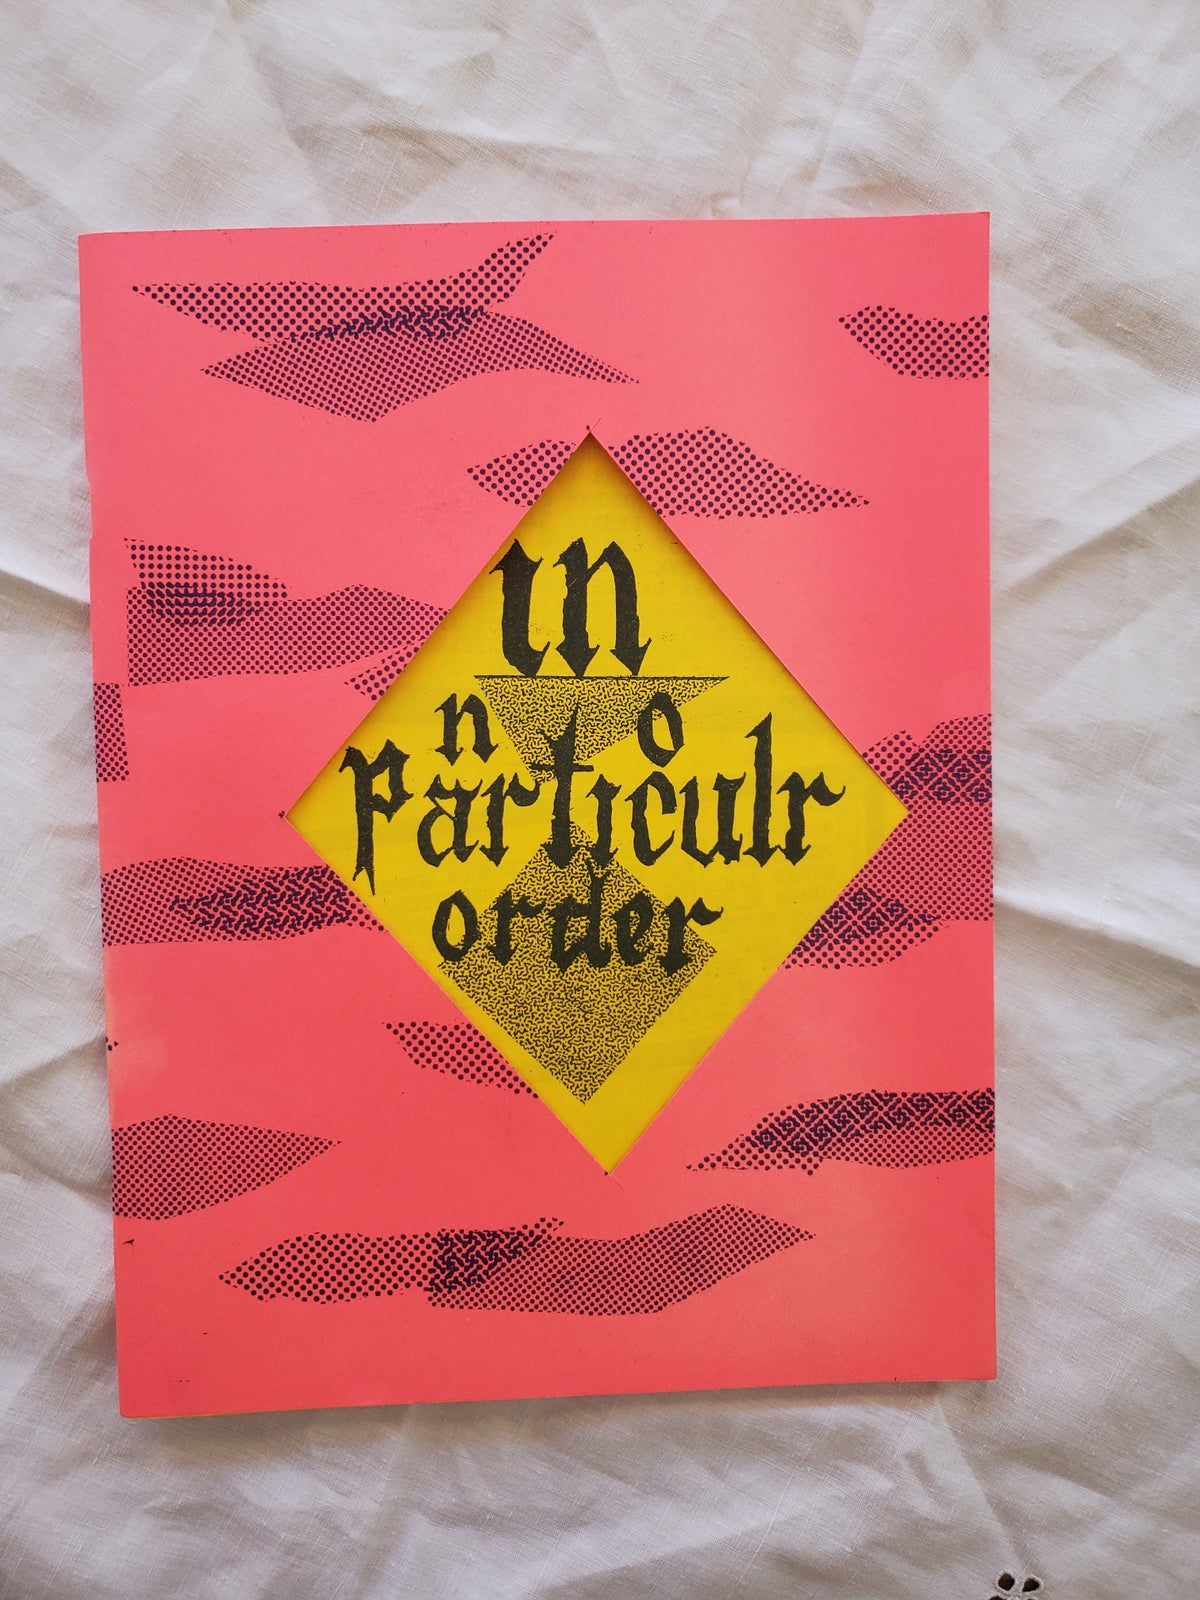 Image of In No Particular Order Art Zine by Abe Social (Silenzio Statico)